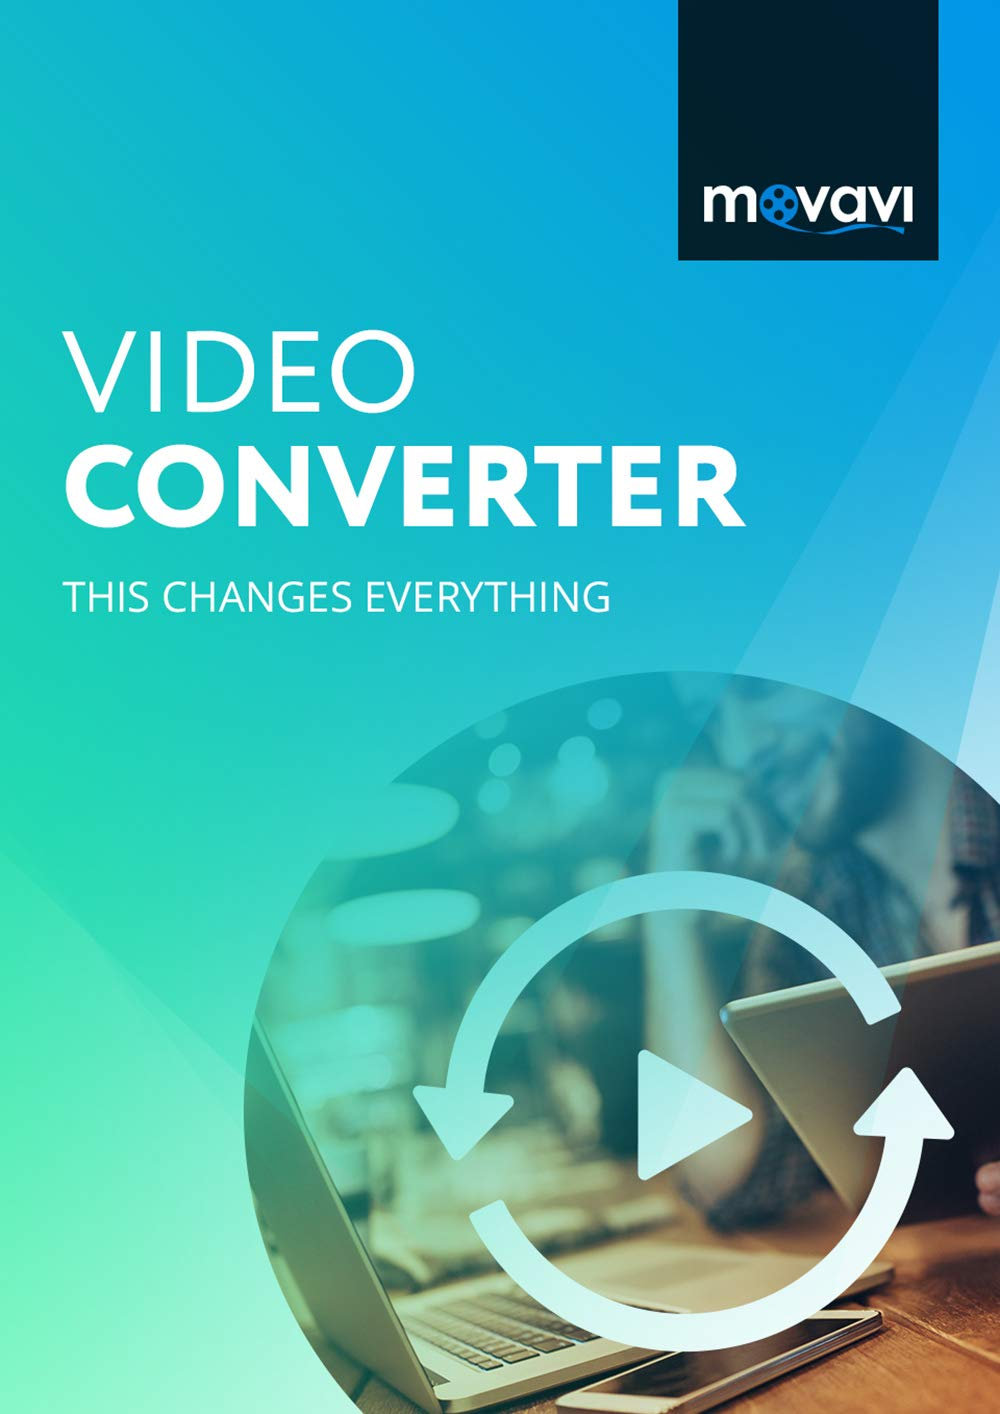 Movavi Video Converter 19 Personal [PC Download] by Movavi Software Inc